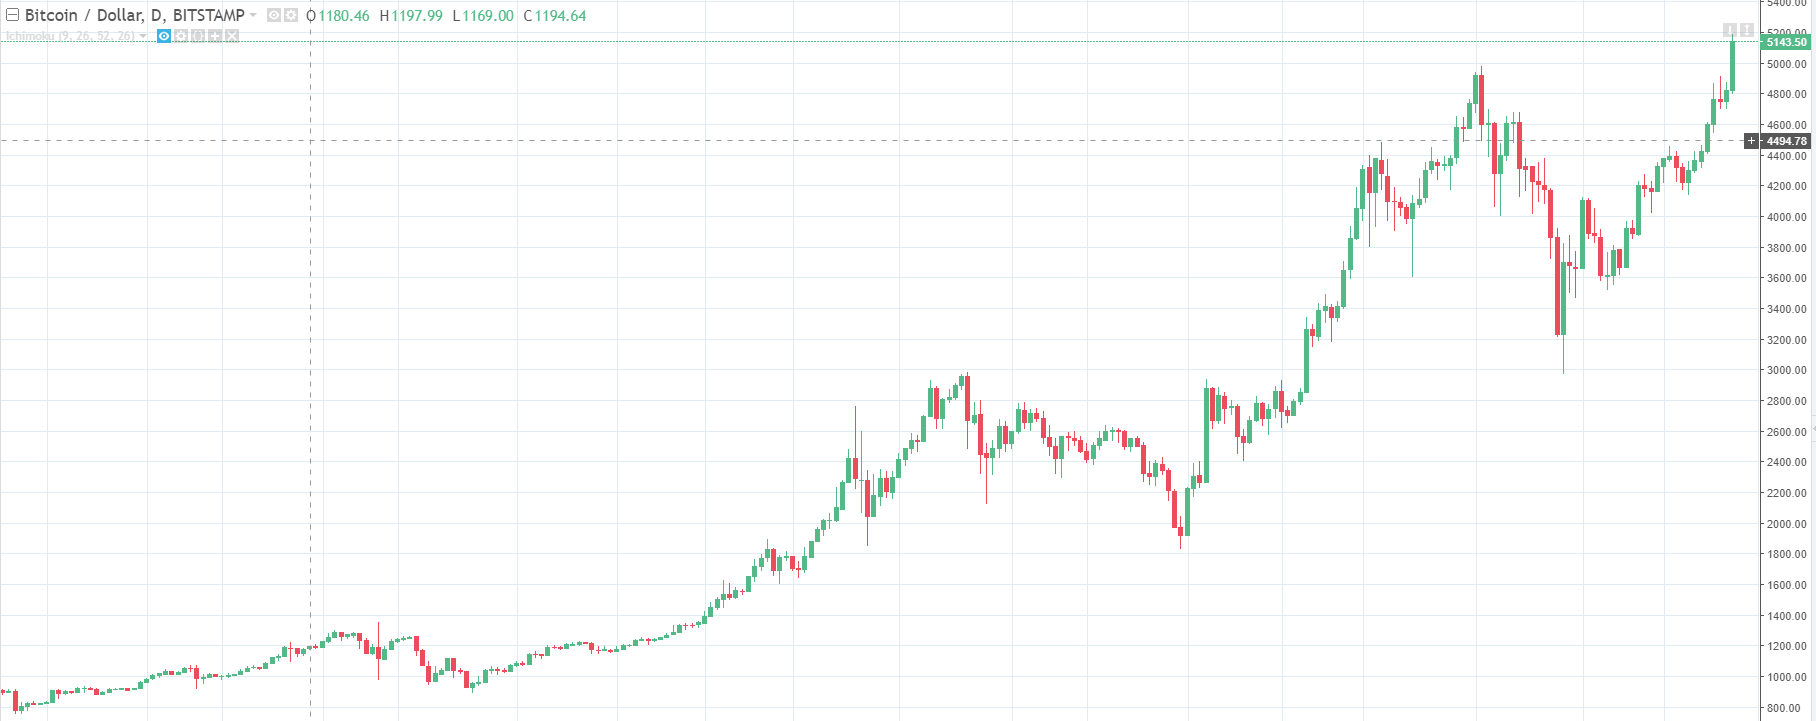 It Is Since March This Year That The Price Of Bitcoin Has Been Increasing Exponentially Consistently Hitting All Time Highs